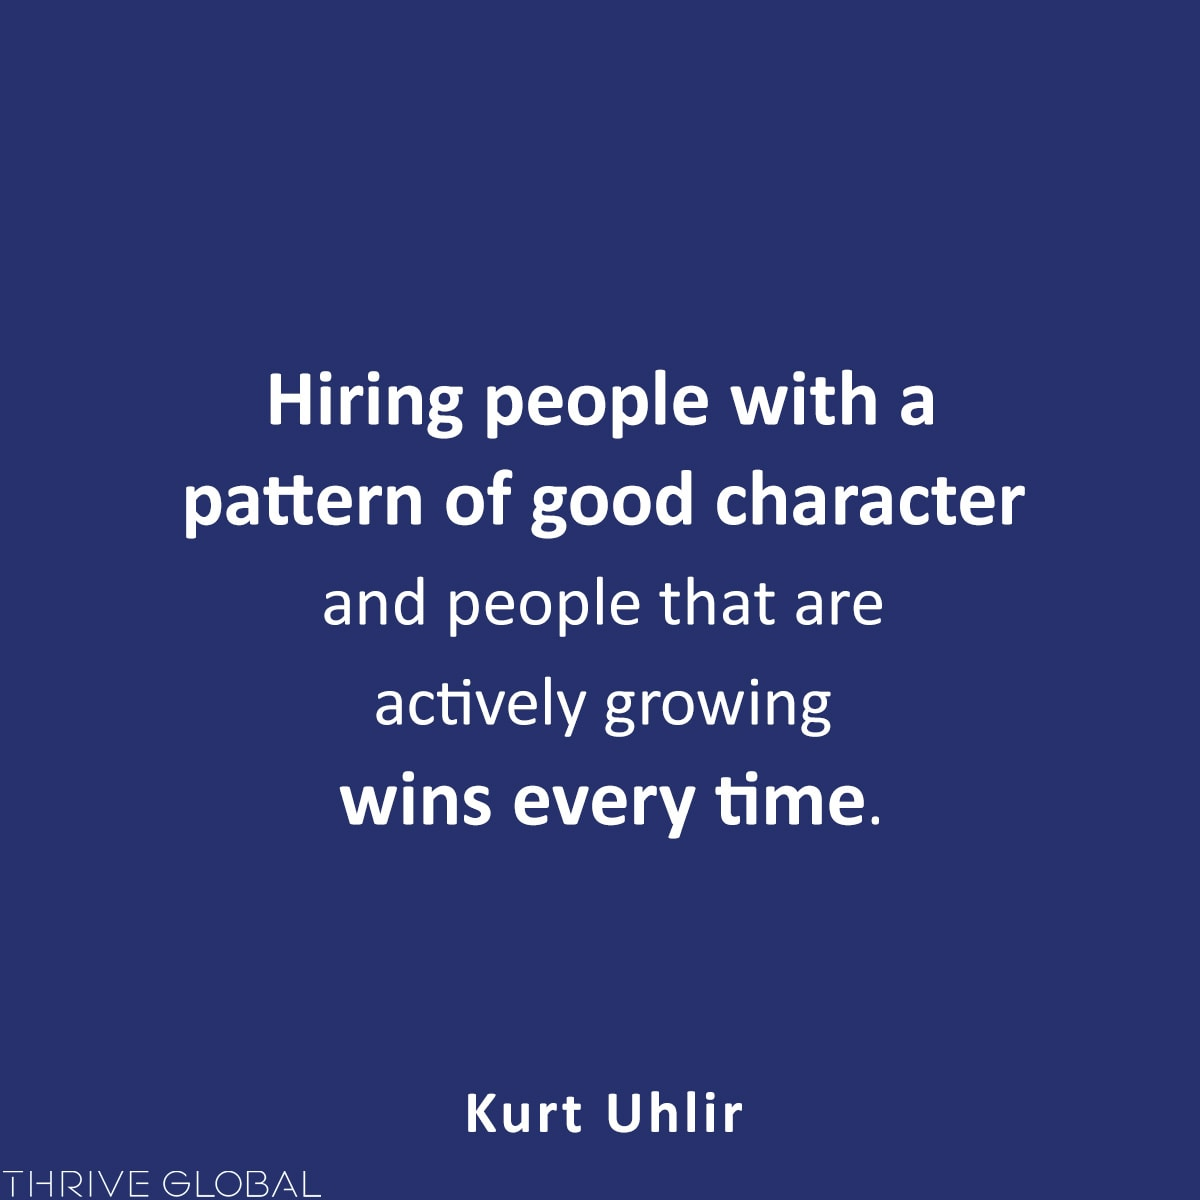 Hiring people with a pattern of good character and people that are actively growing wins every time.